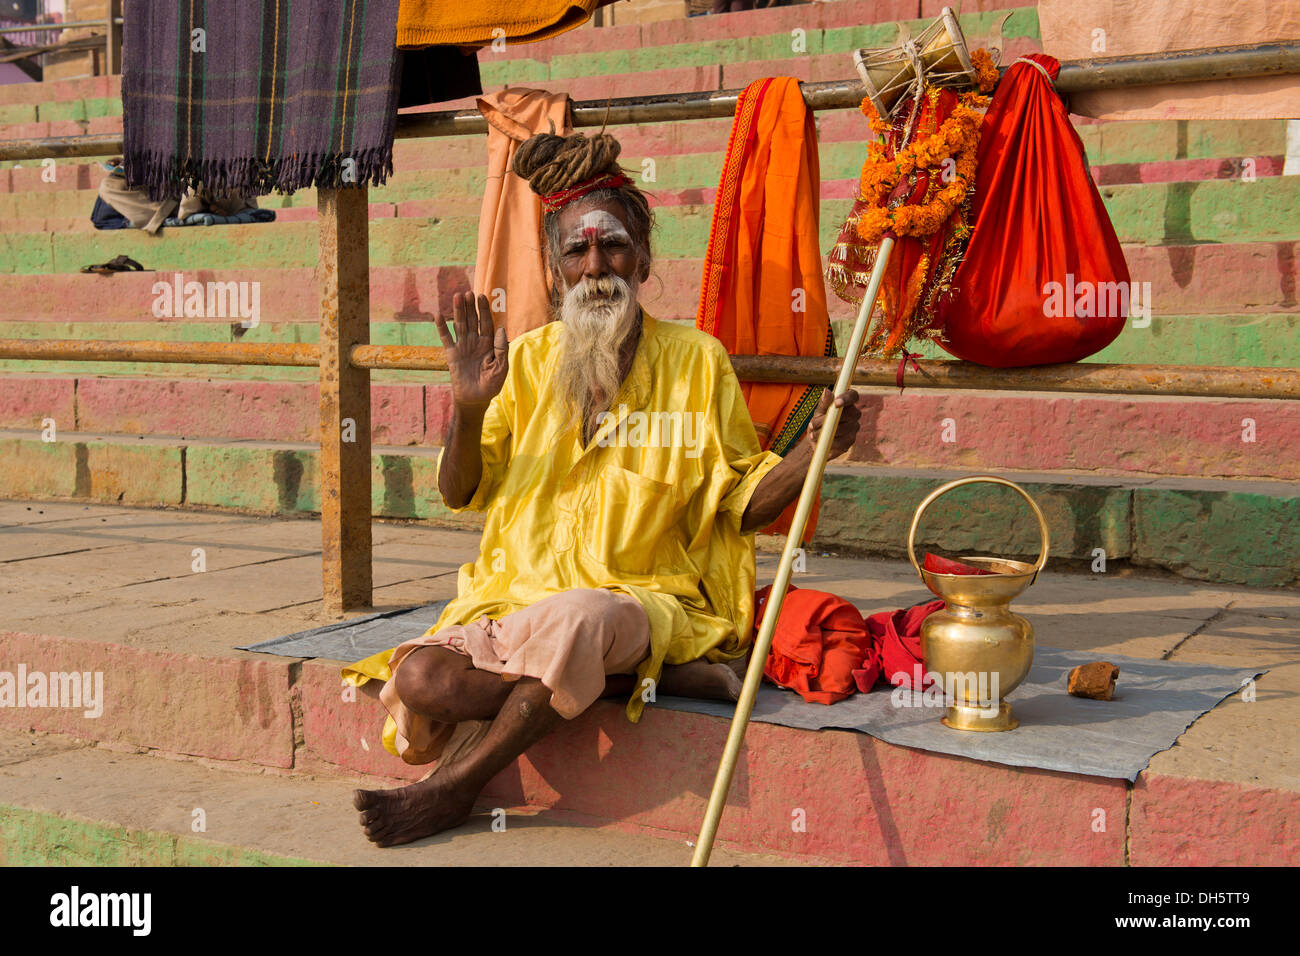 Elderly Sadhu, holy man or wandering ascetic sitting on a blanket on the steps on the bank of the Ganges River with various - Stock Image